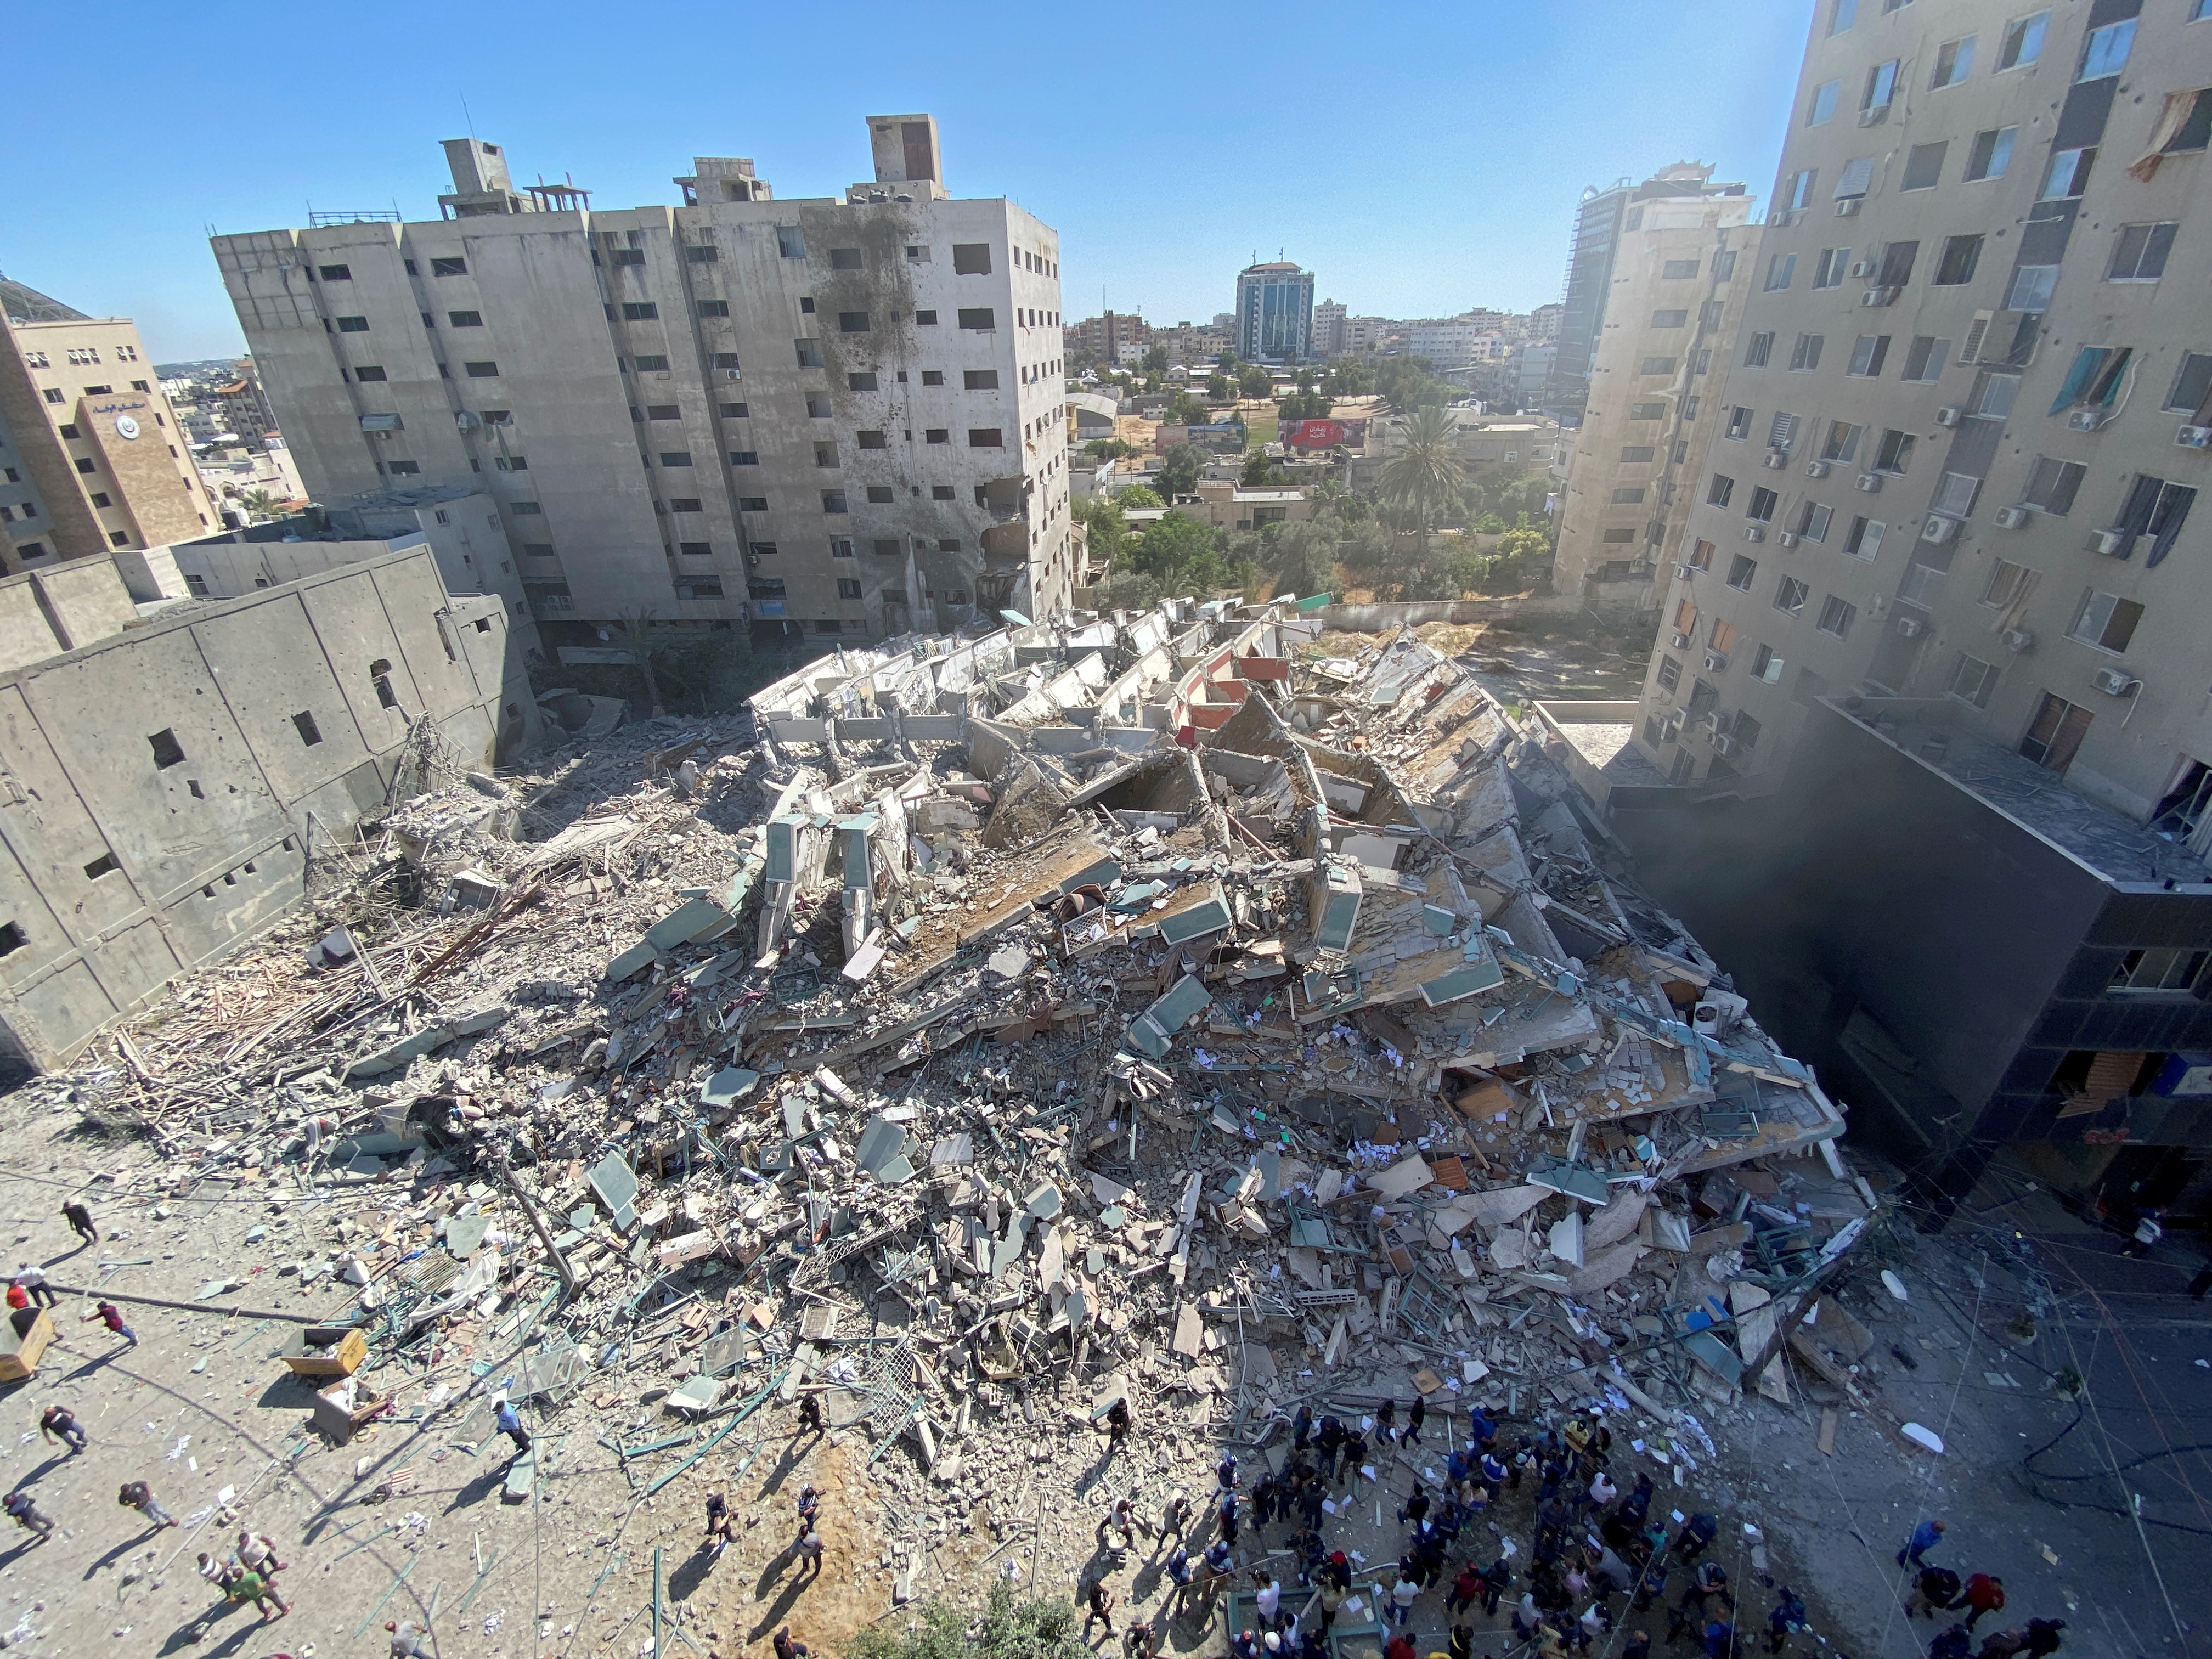 A tower housing AP, Al Jazeera offices collapses after Israeli missile strikes in Gaza city, May 15. REUTERS/Mohammed Salem/File Photo